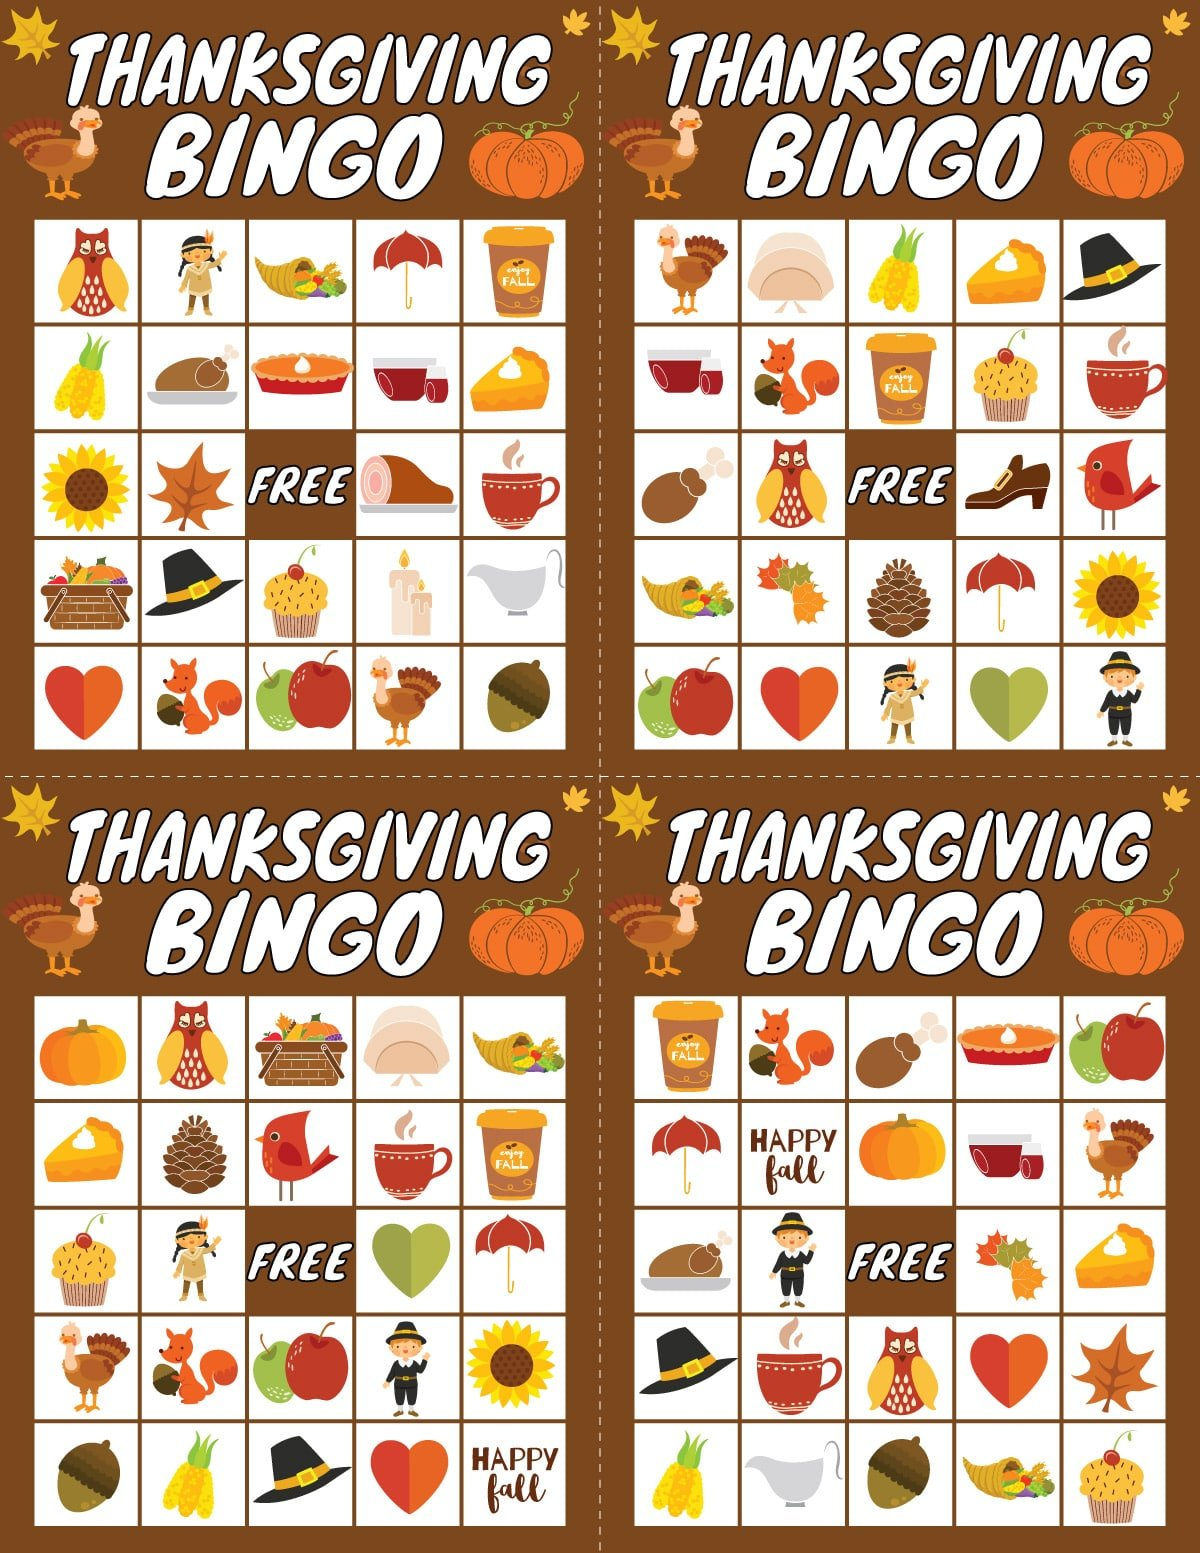 Four Thanksgiving bingo cards with Thanksgiving images on them